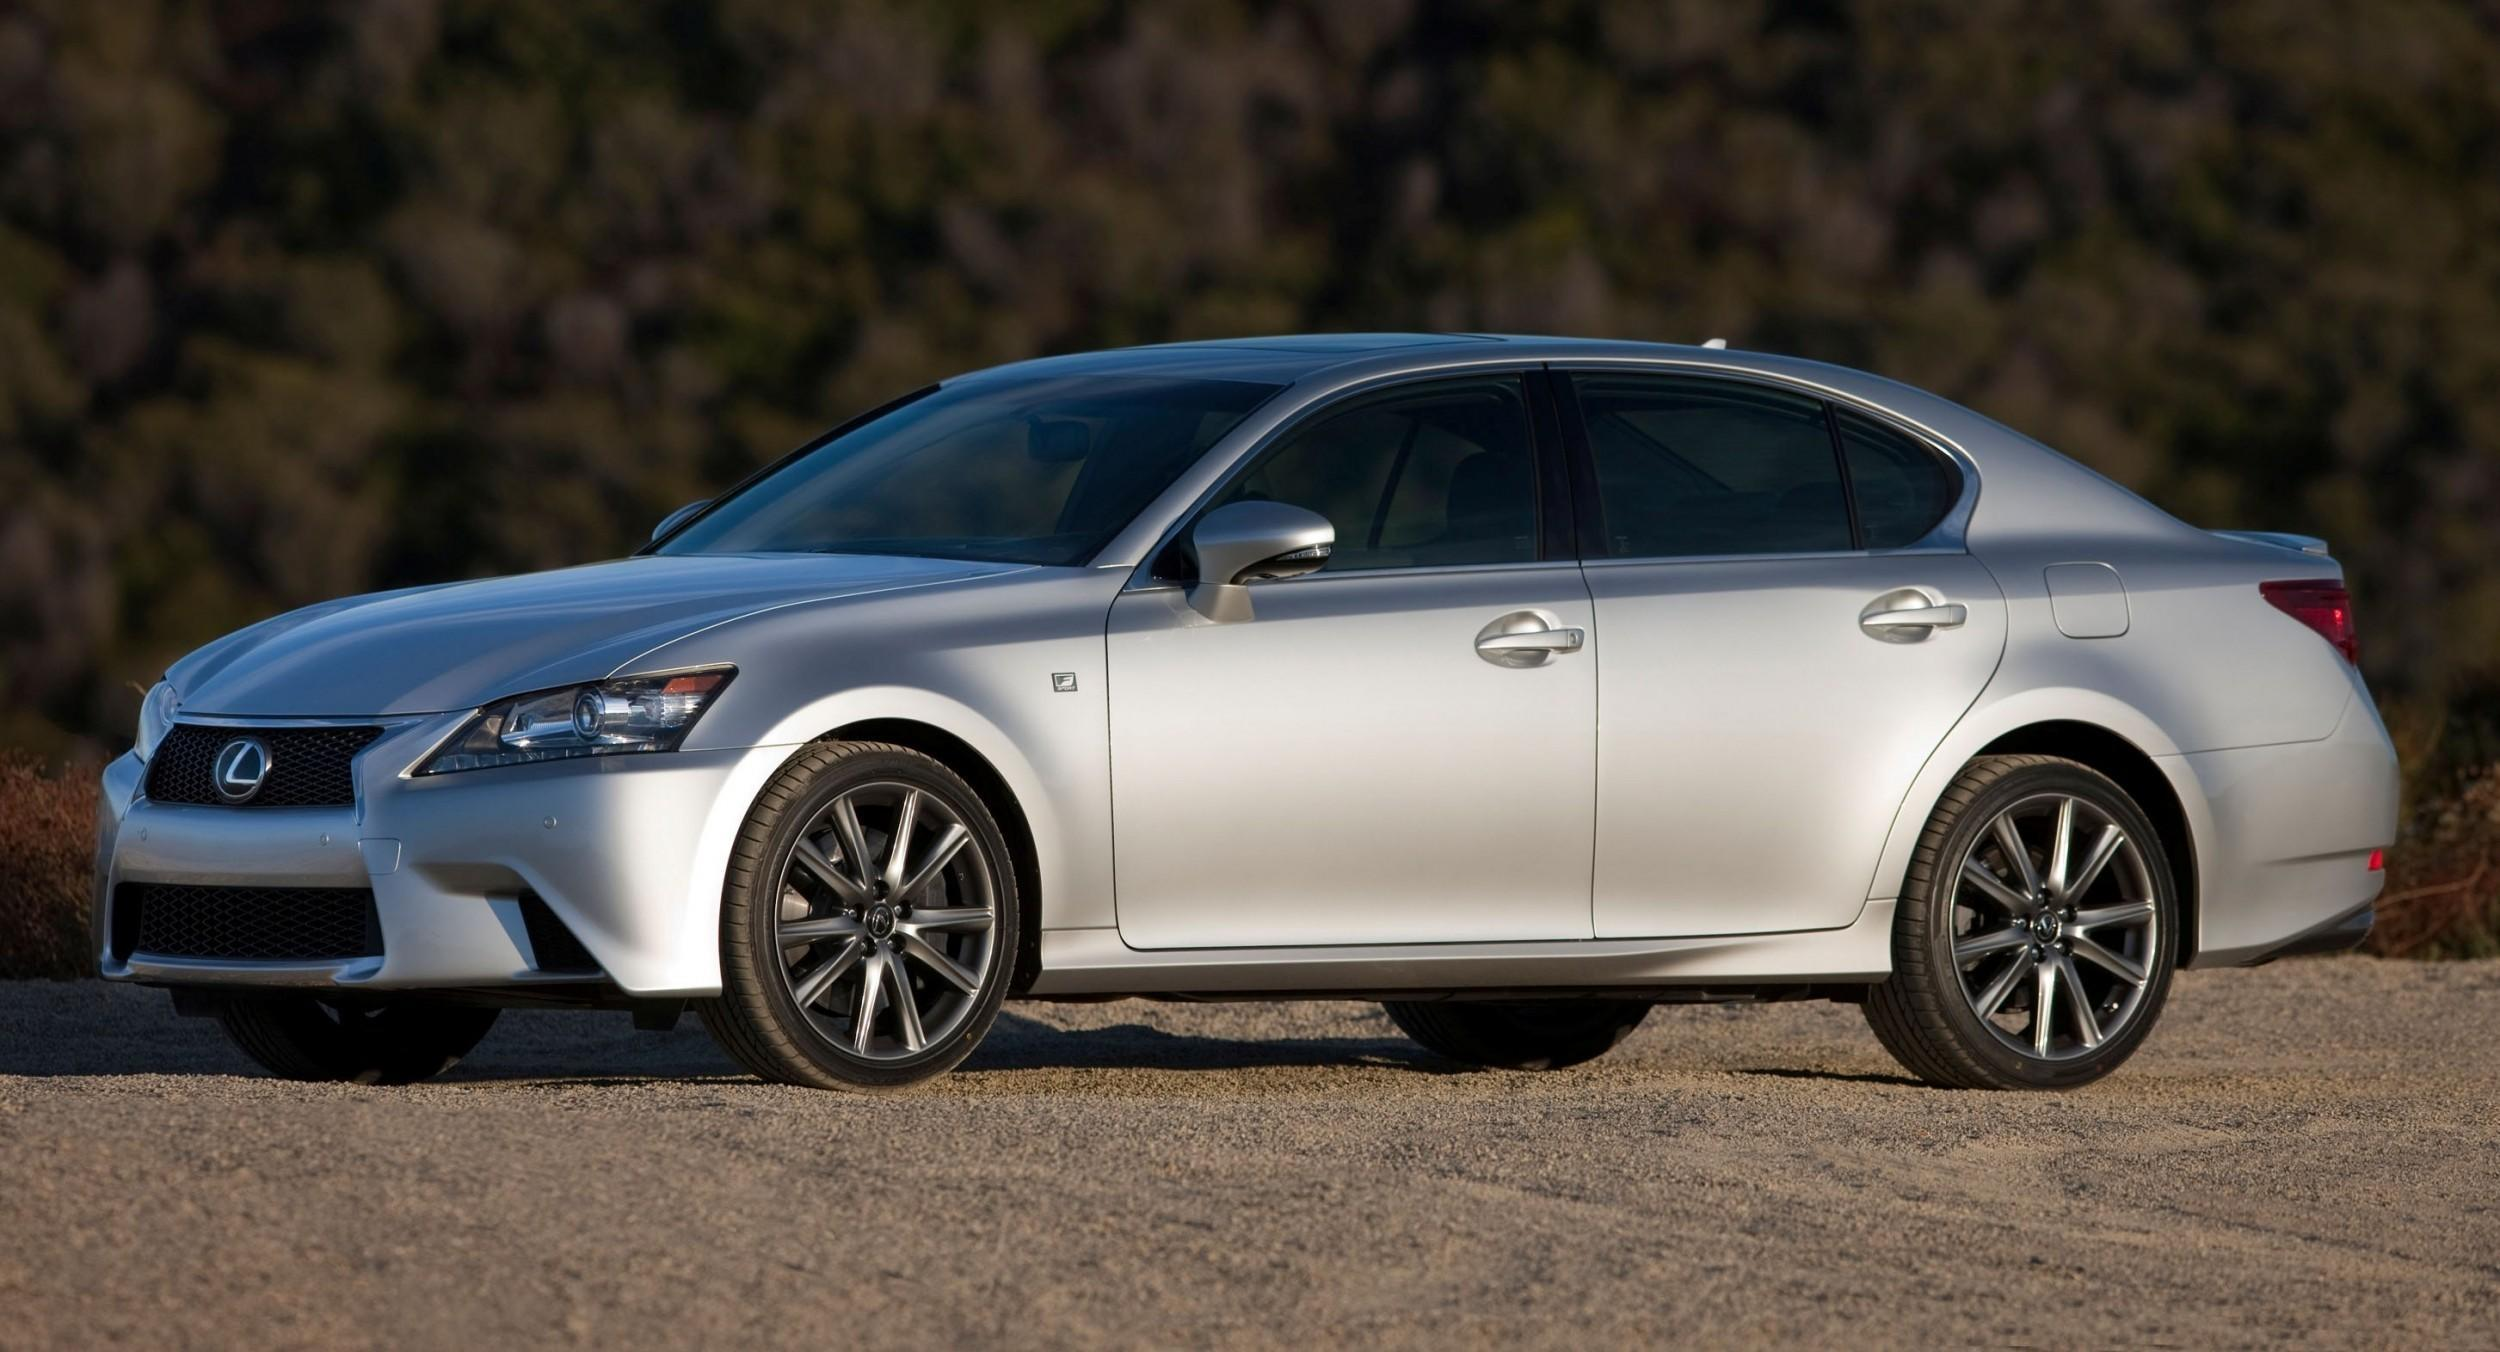 2014 lexus gs350 vs f sport vs gs450h buyers guide info and model comparisons. Black Bedroom Furniture Sets. Home Design Ideas